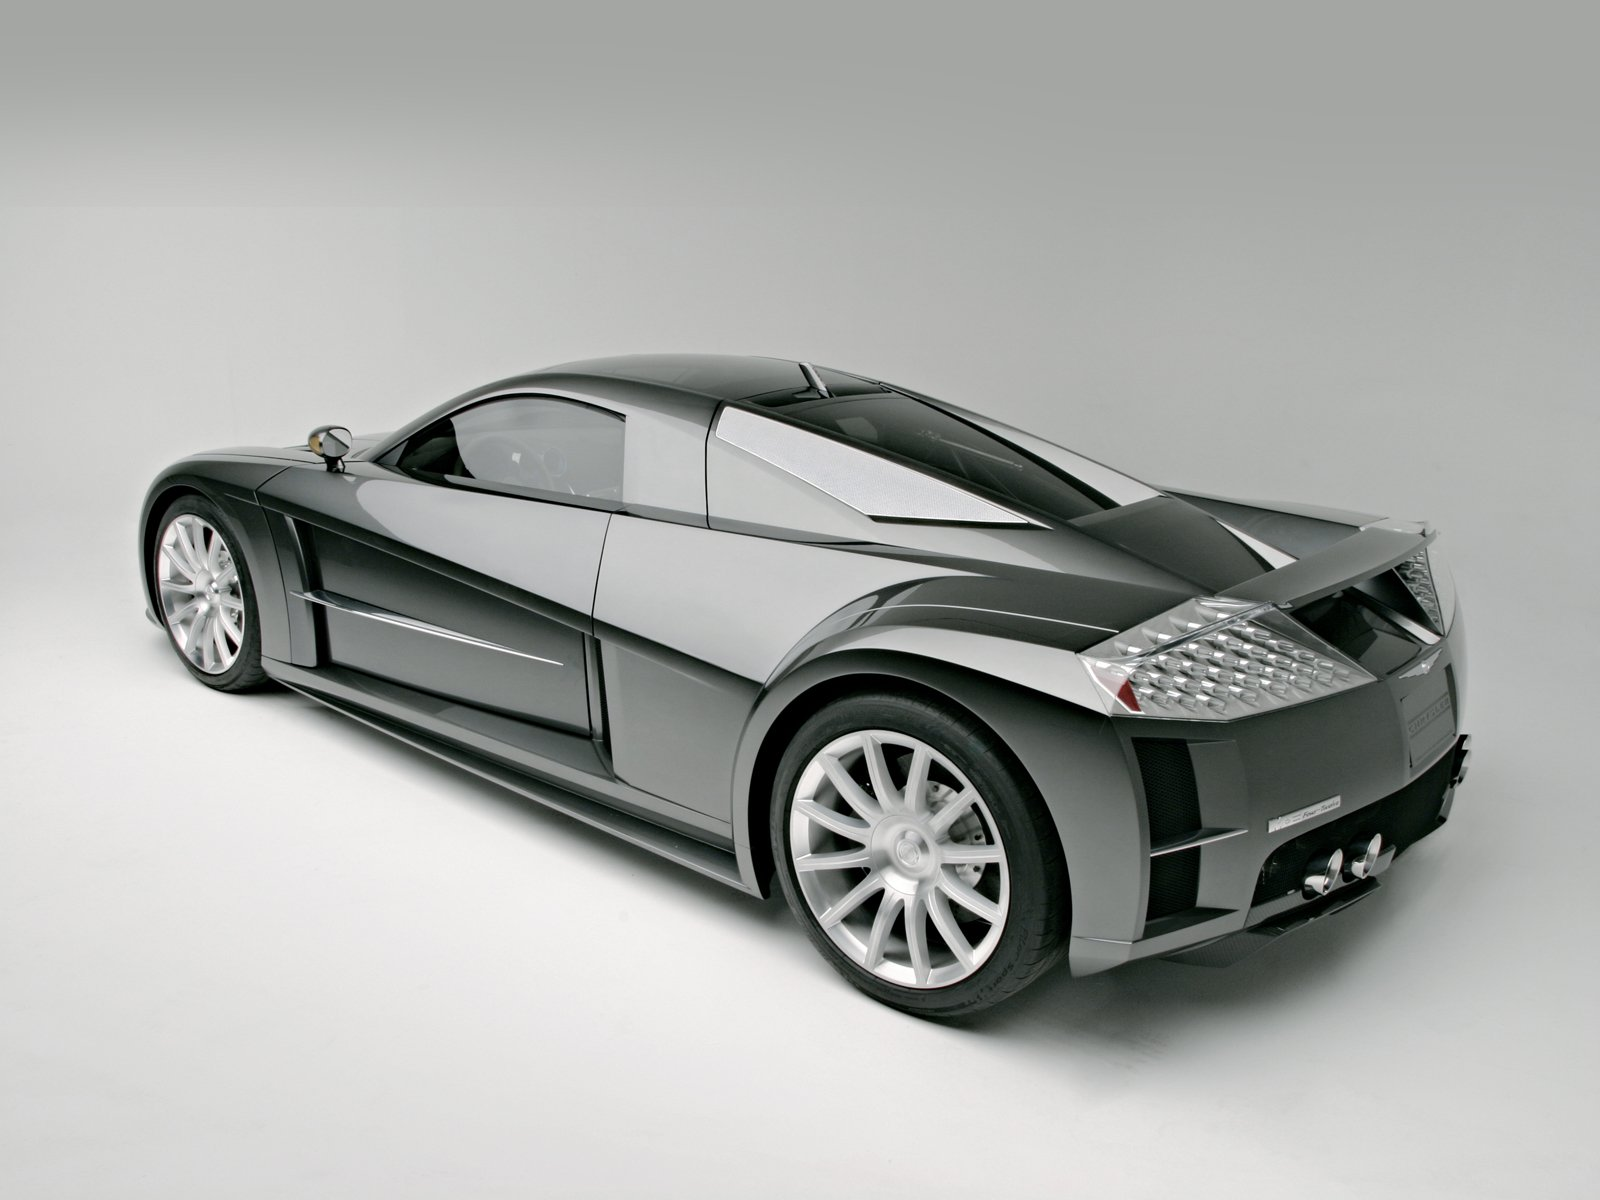 future is kendall sports blog the srt chrysler a car crossfire classic